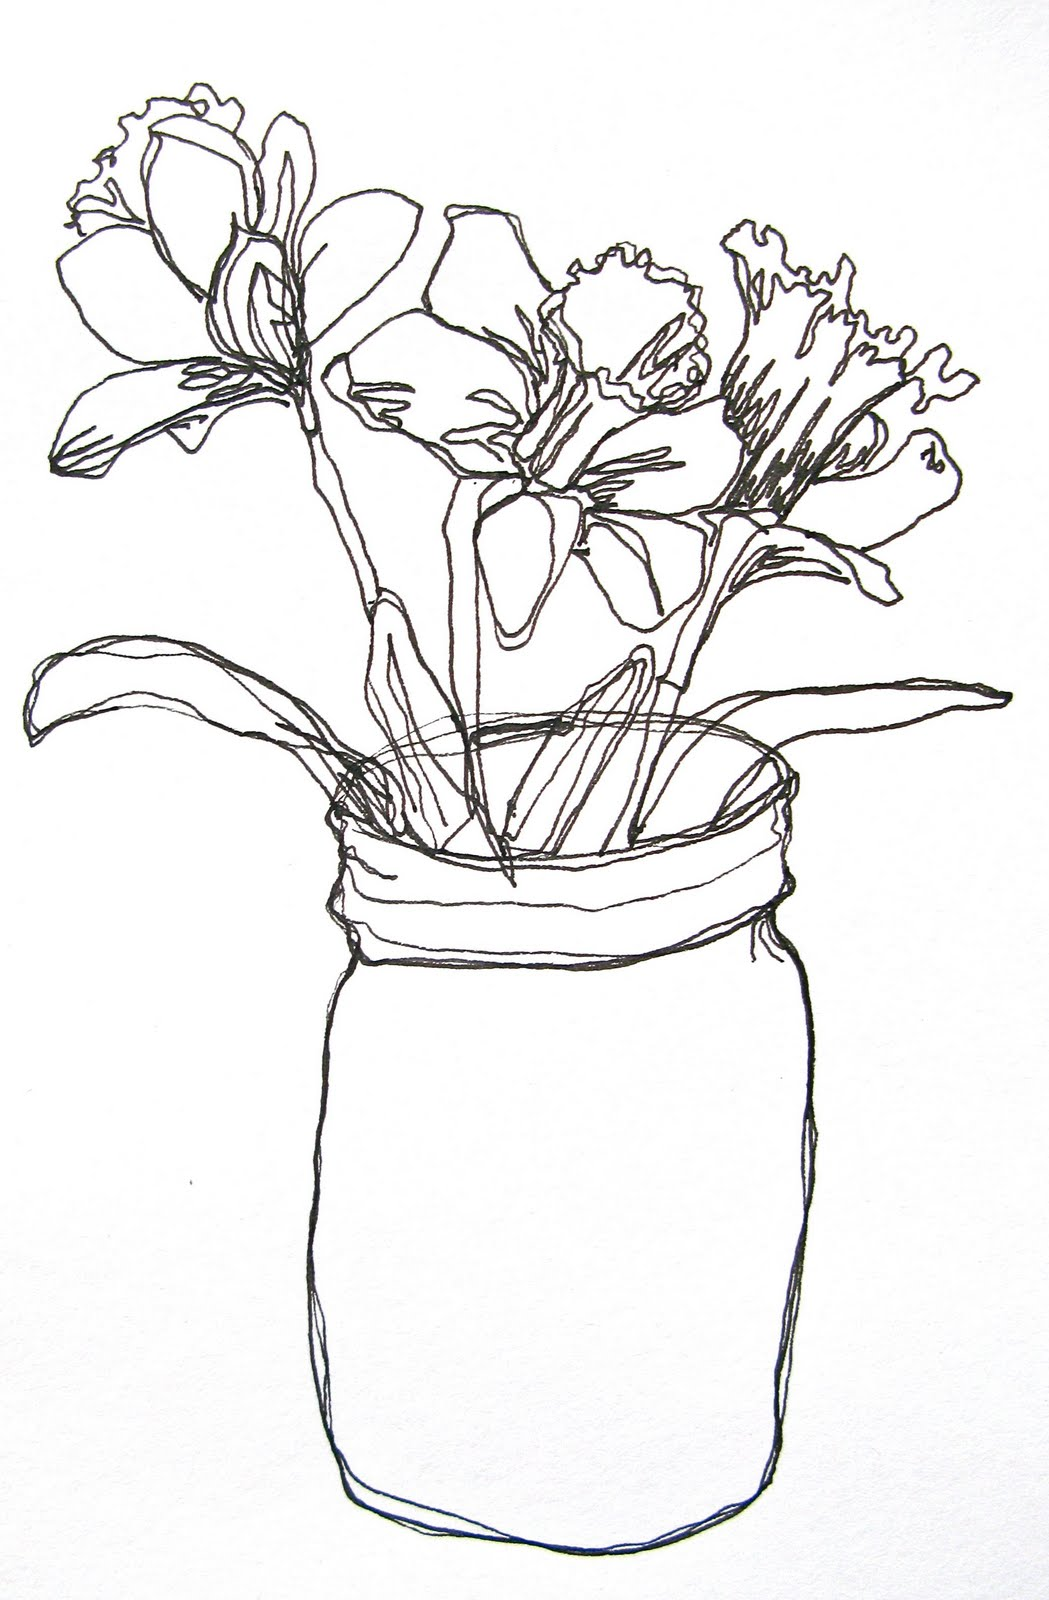 Flower Plant Line Drawing : Corrieberry pie flower doodles